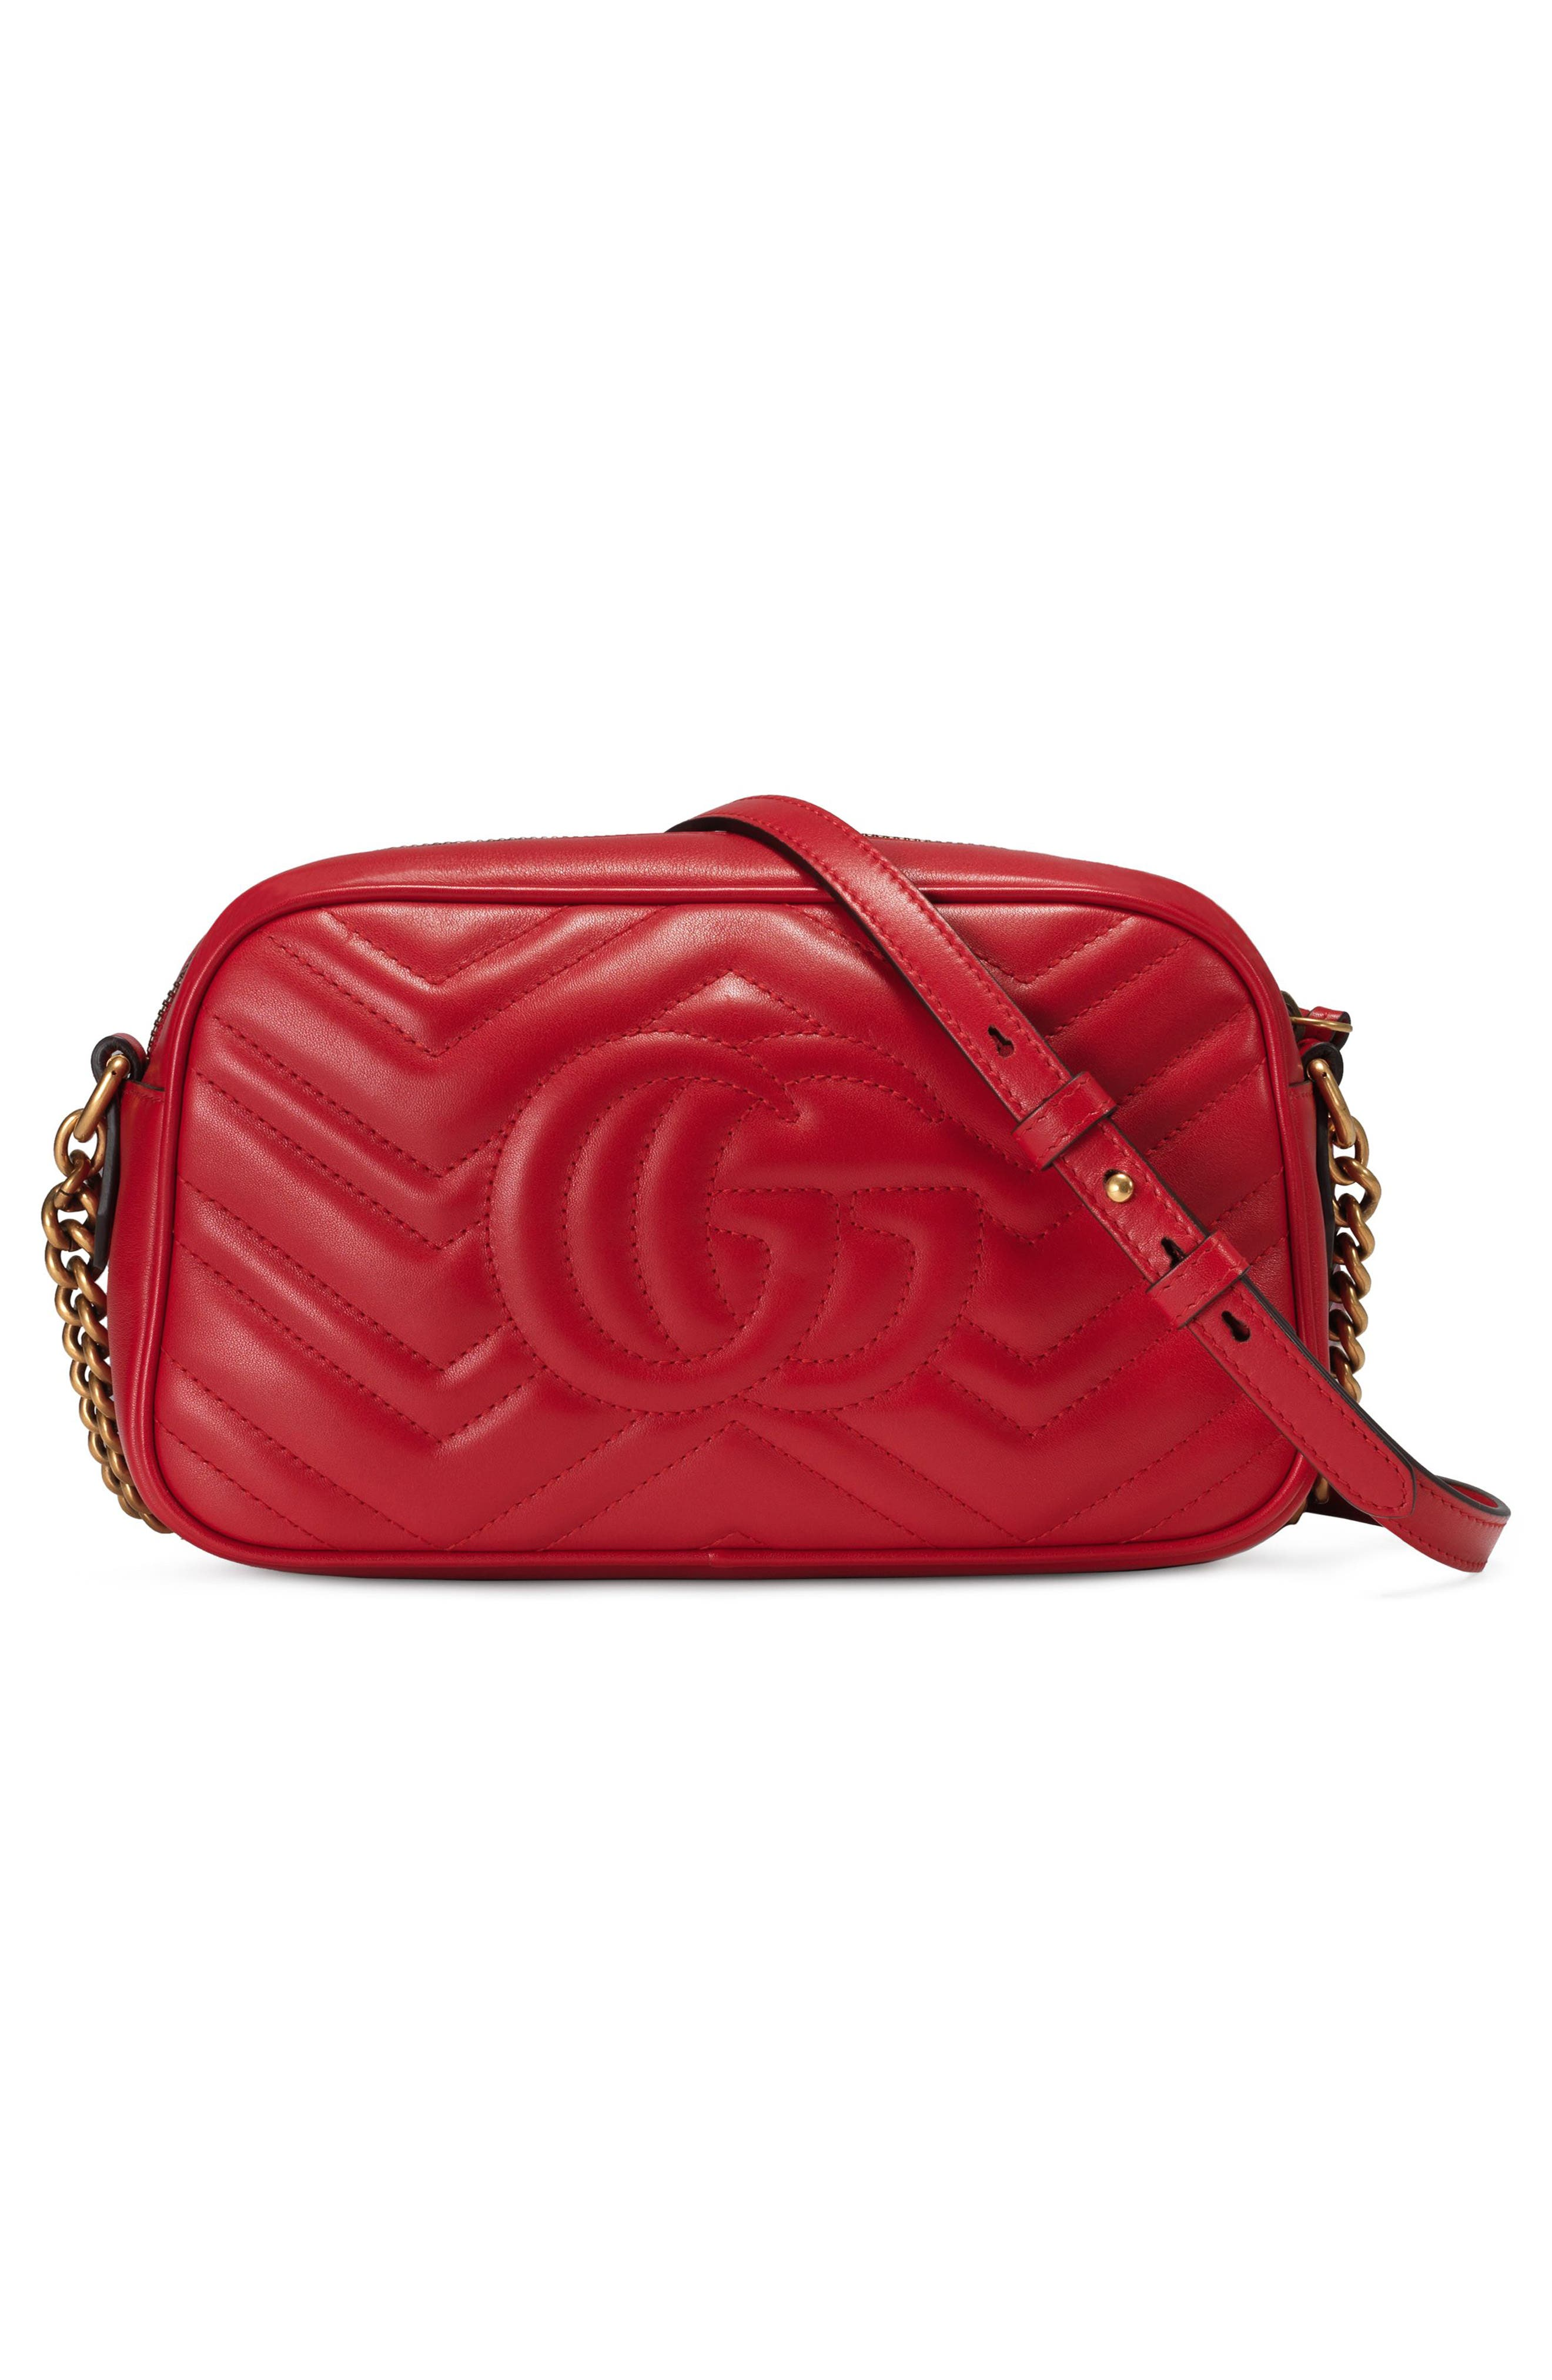 GUCCI,                             Small GG Marmont 2.0 Matelassé Leather Camera Bag,                             Alternate thumbnail 2, color,                             HIBISCUS RED/ HIBISCUS RED